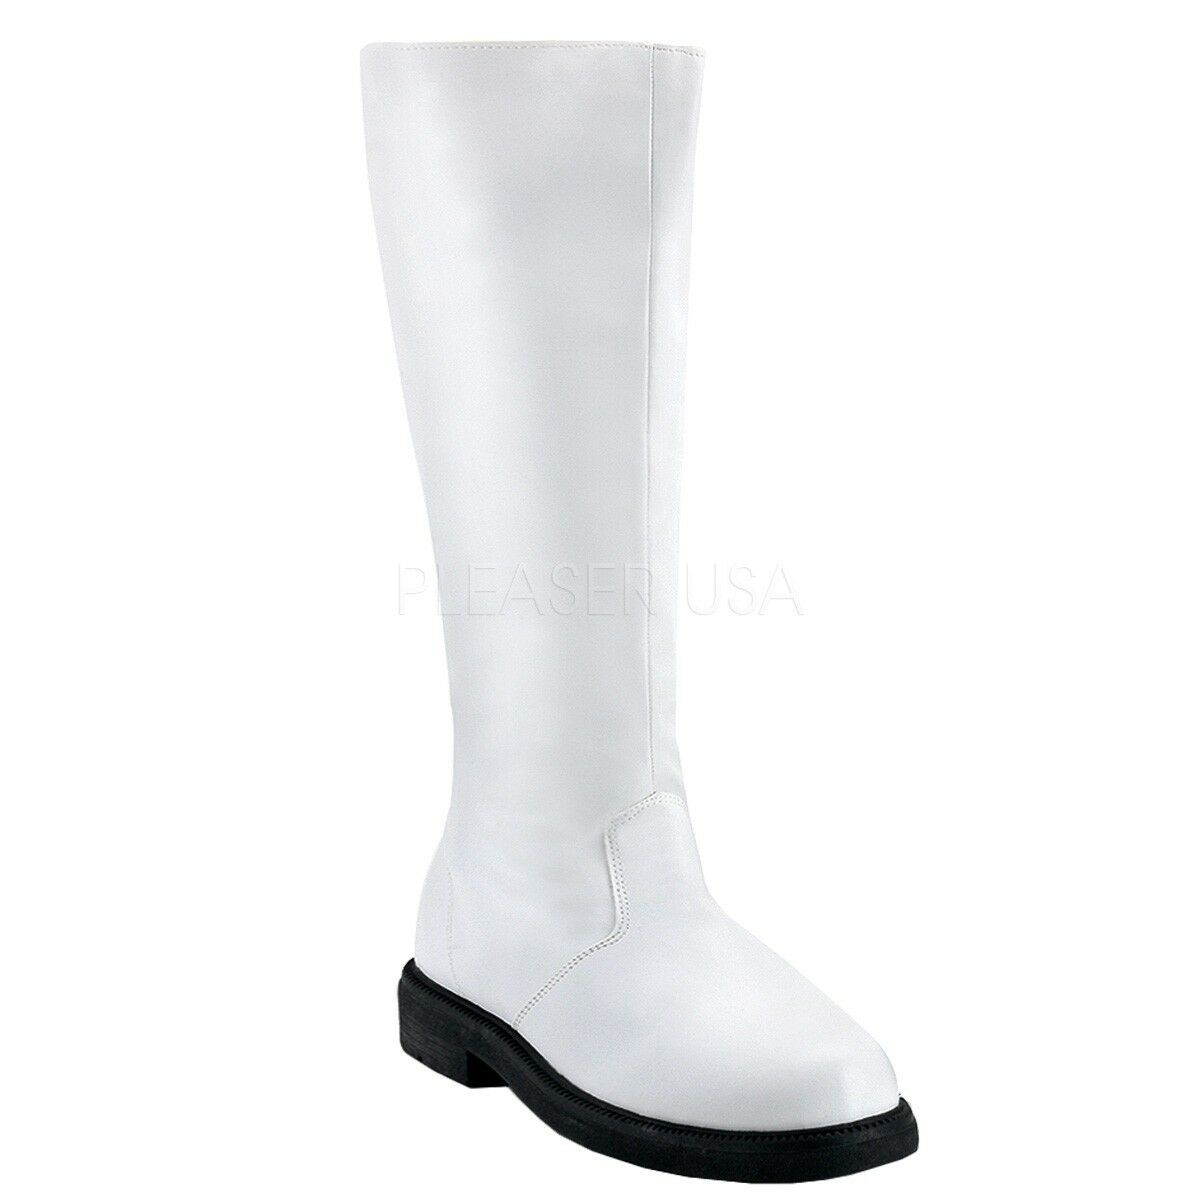 Funtasma Captain White Knee High 1  Heel Costume Cosplay Trooper Boots Men 8-14